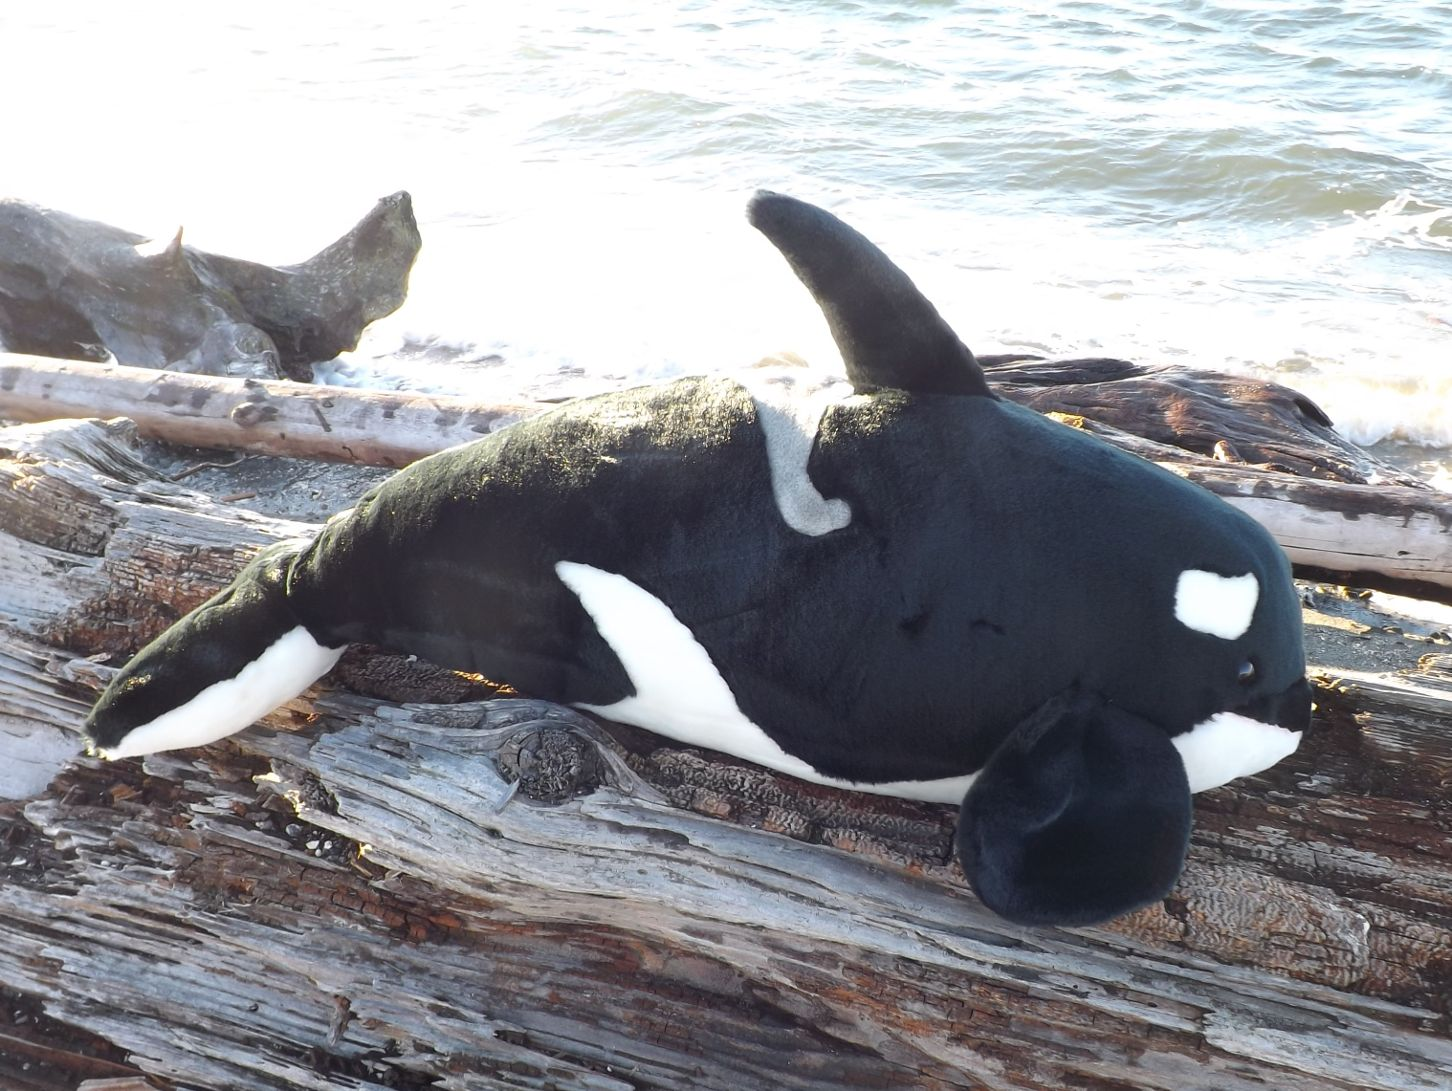 Z4075-Huge-Stuffed-Orca-Whale-40